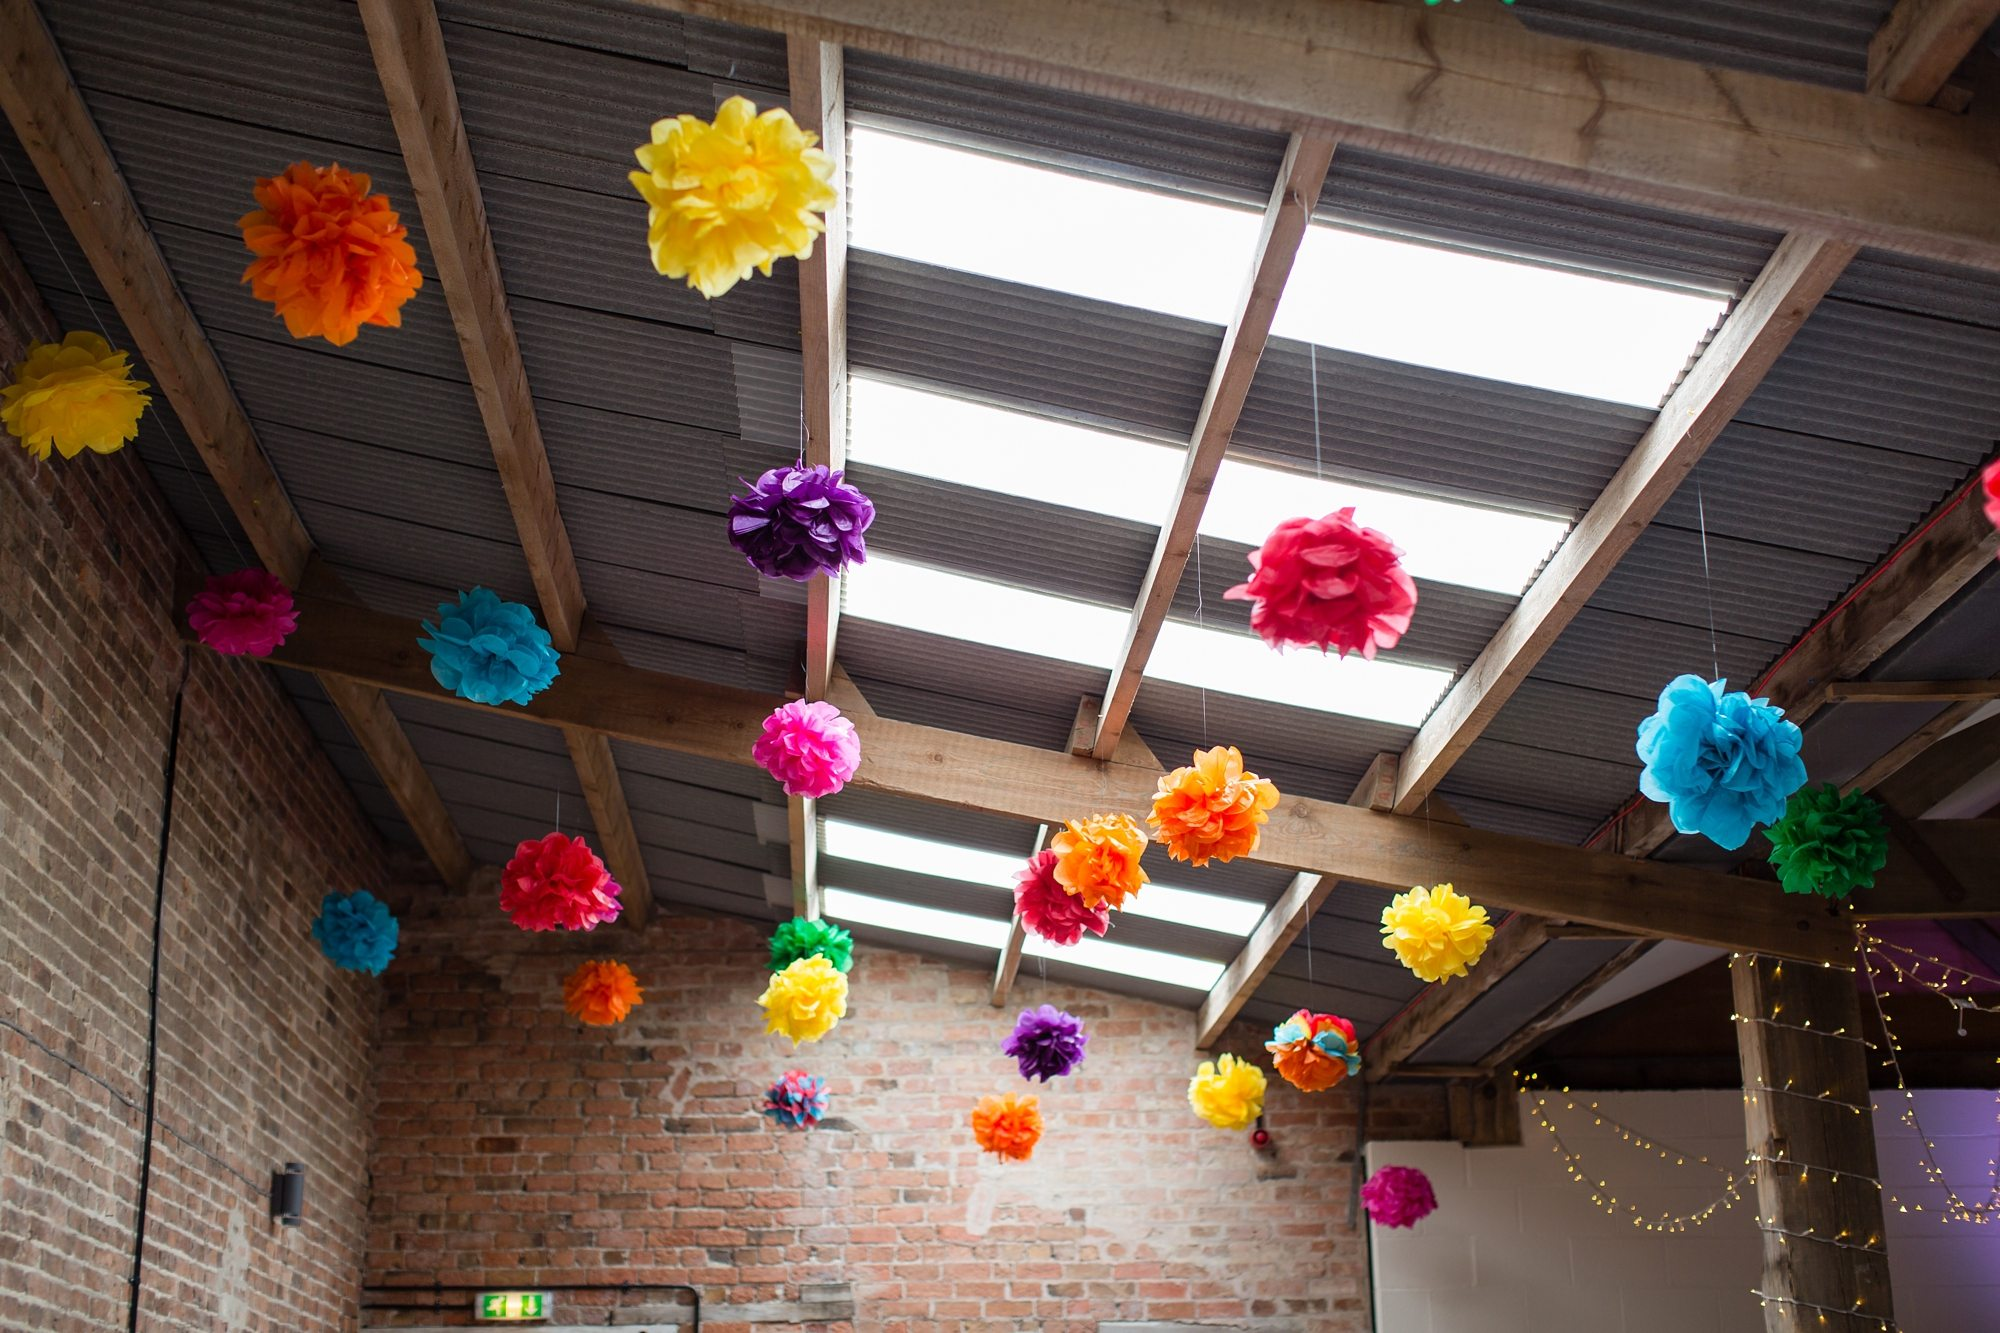 hanging flowers under skylight in wedding barn